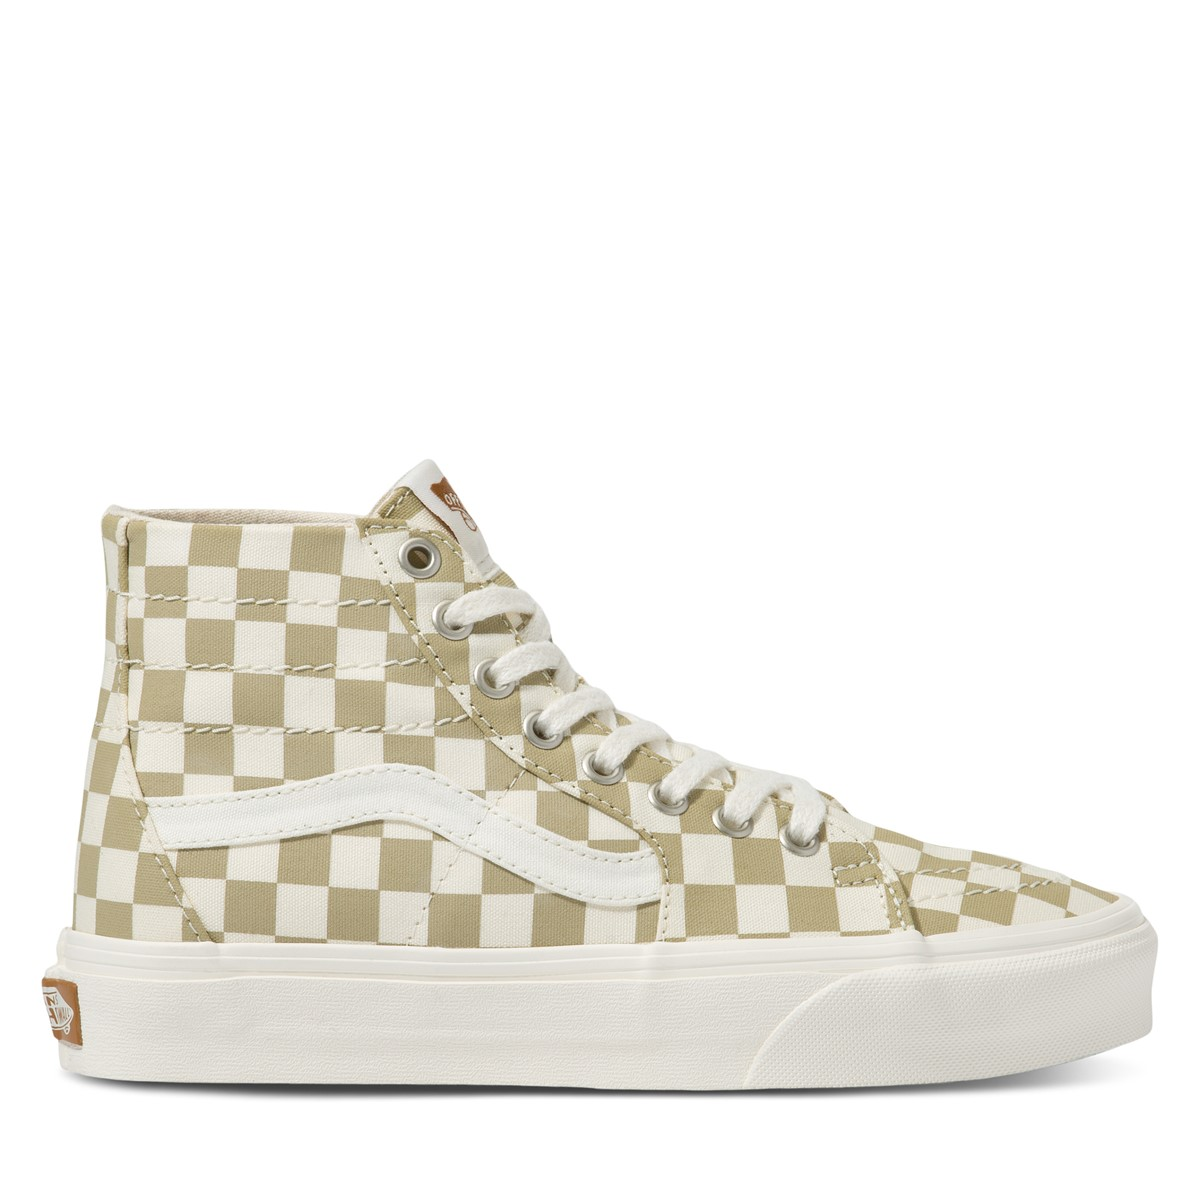 Eco Theory Checkerboard Sk8-Hi Sneakers in White/Beige